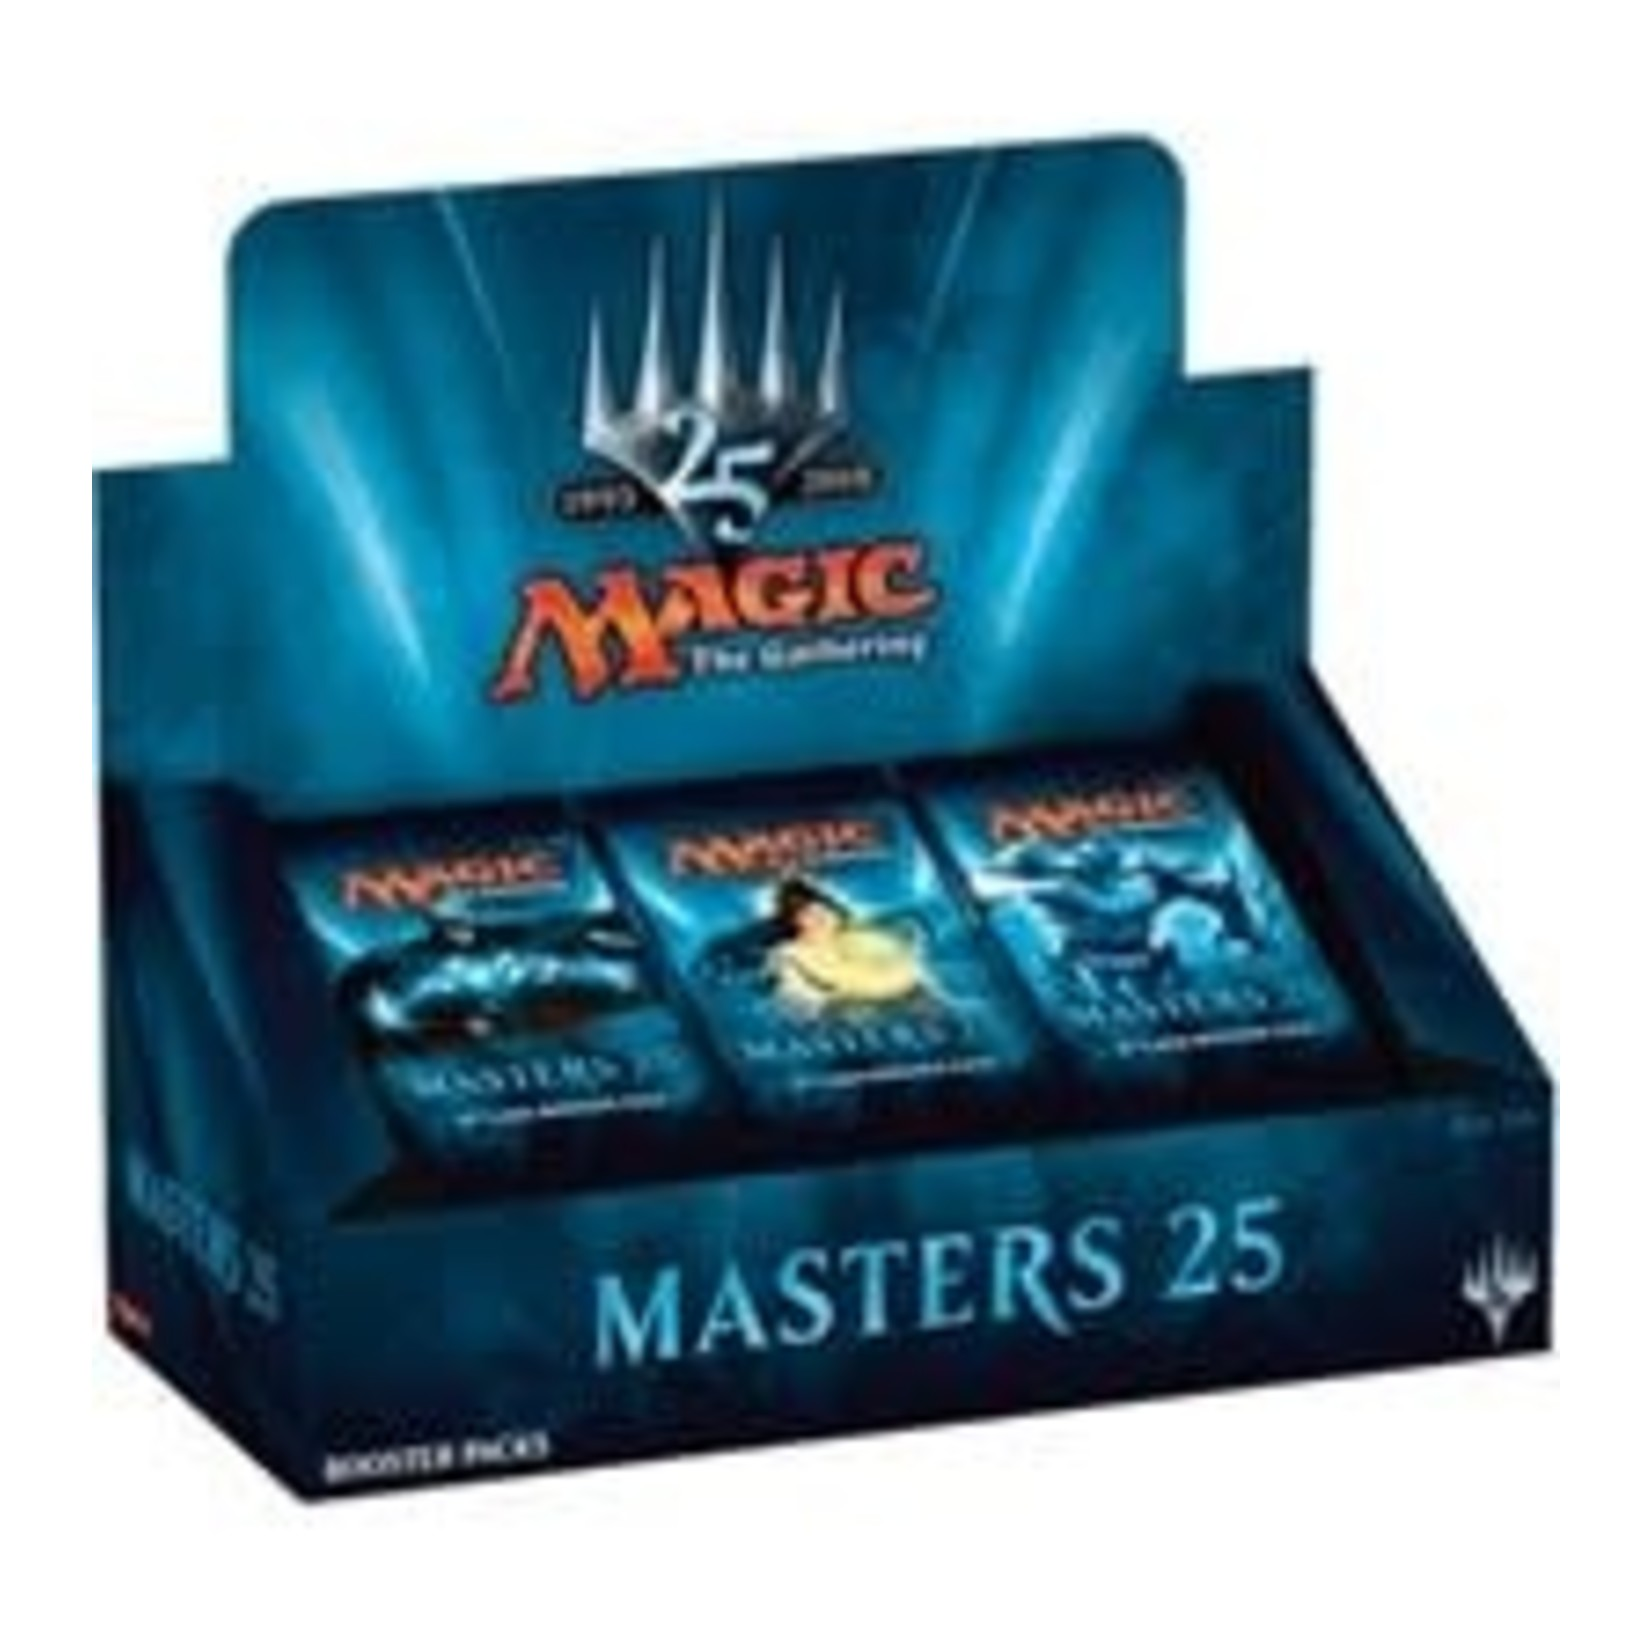 Wizards of the Coast Magic the Gathering: Masters 25 Booster Box